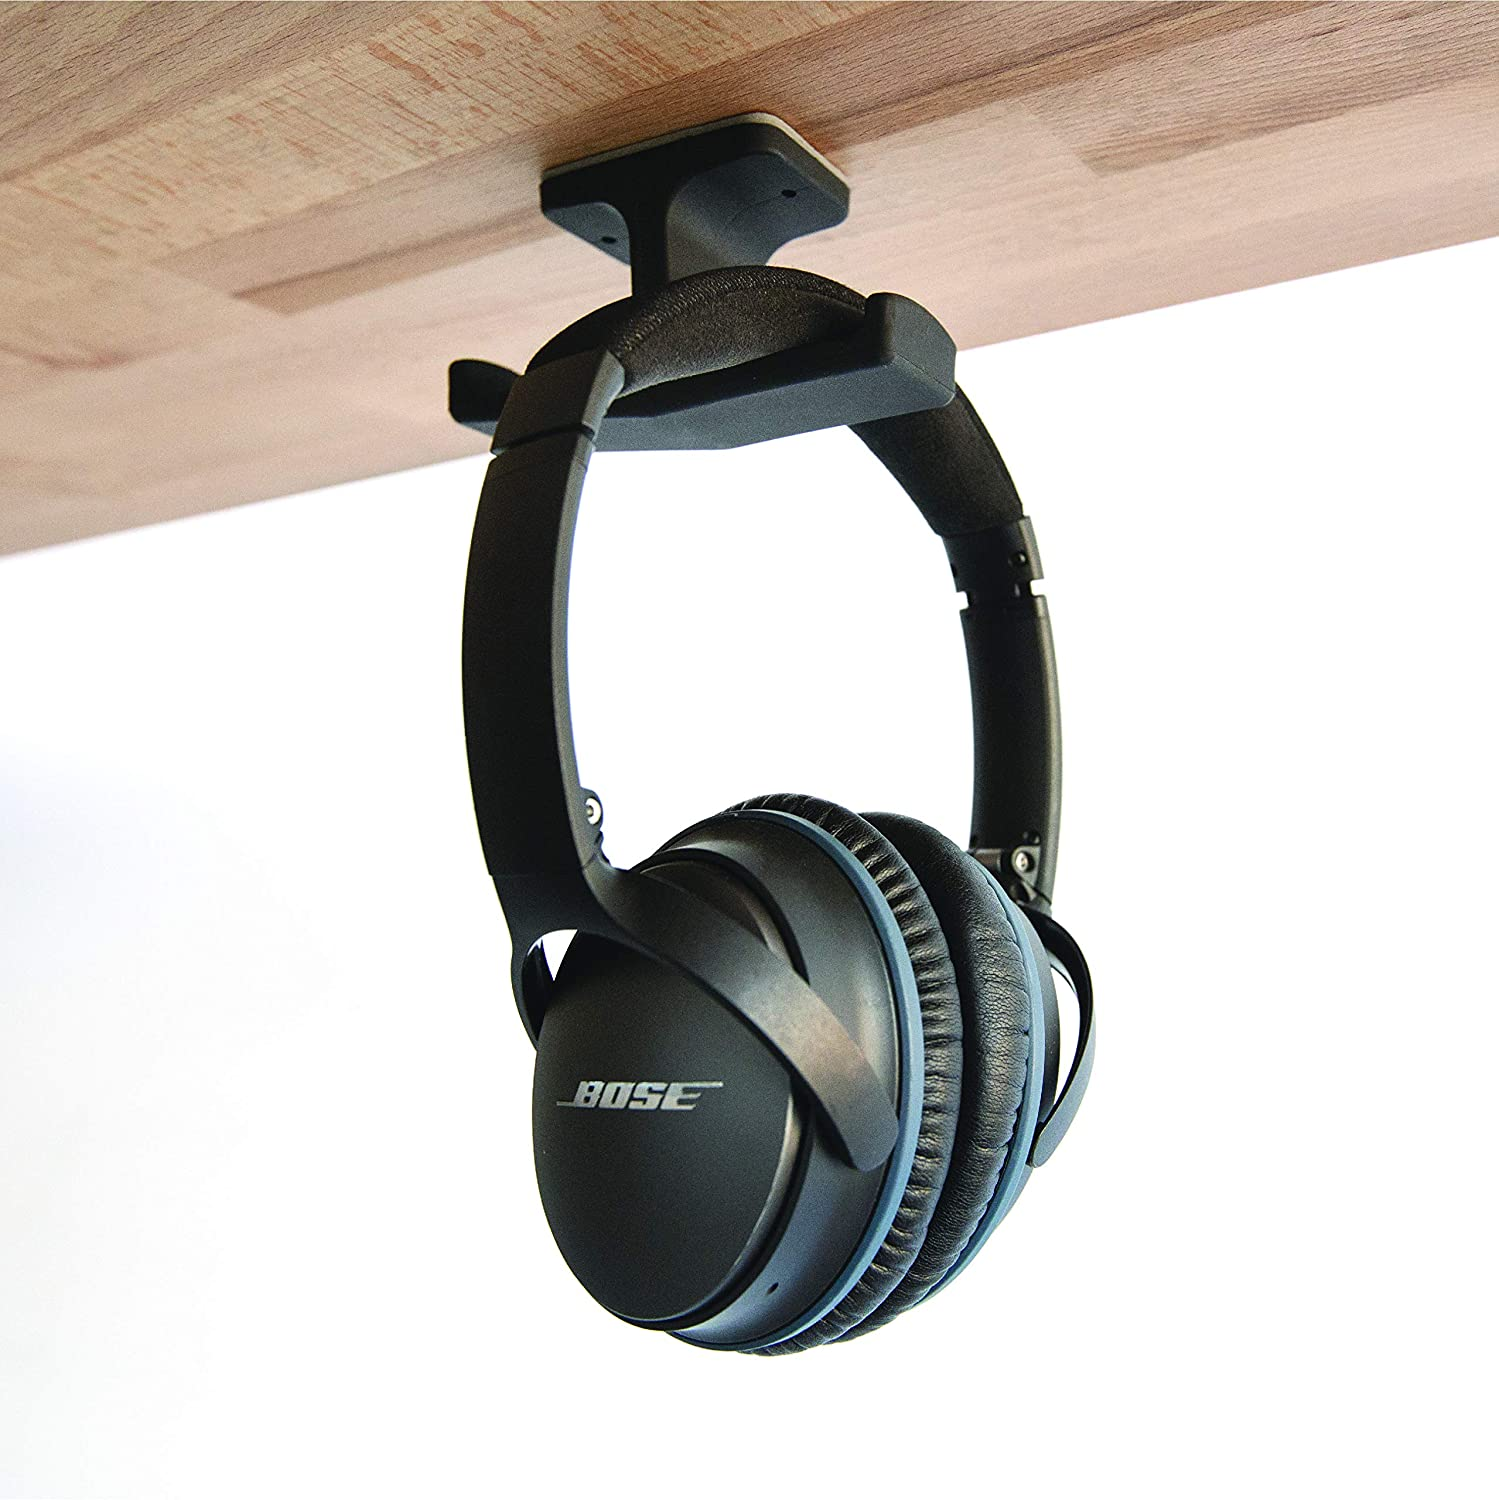 Universal Dual Fit The Original Under-Desk Headphone Stand Mount Patented Elevation Lab The Anchor Over Ear Headphones Hook Gaming Headset